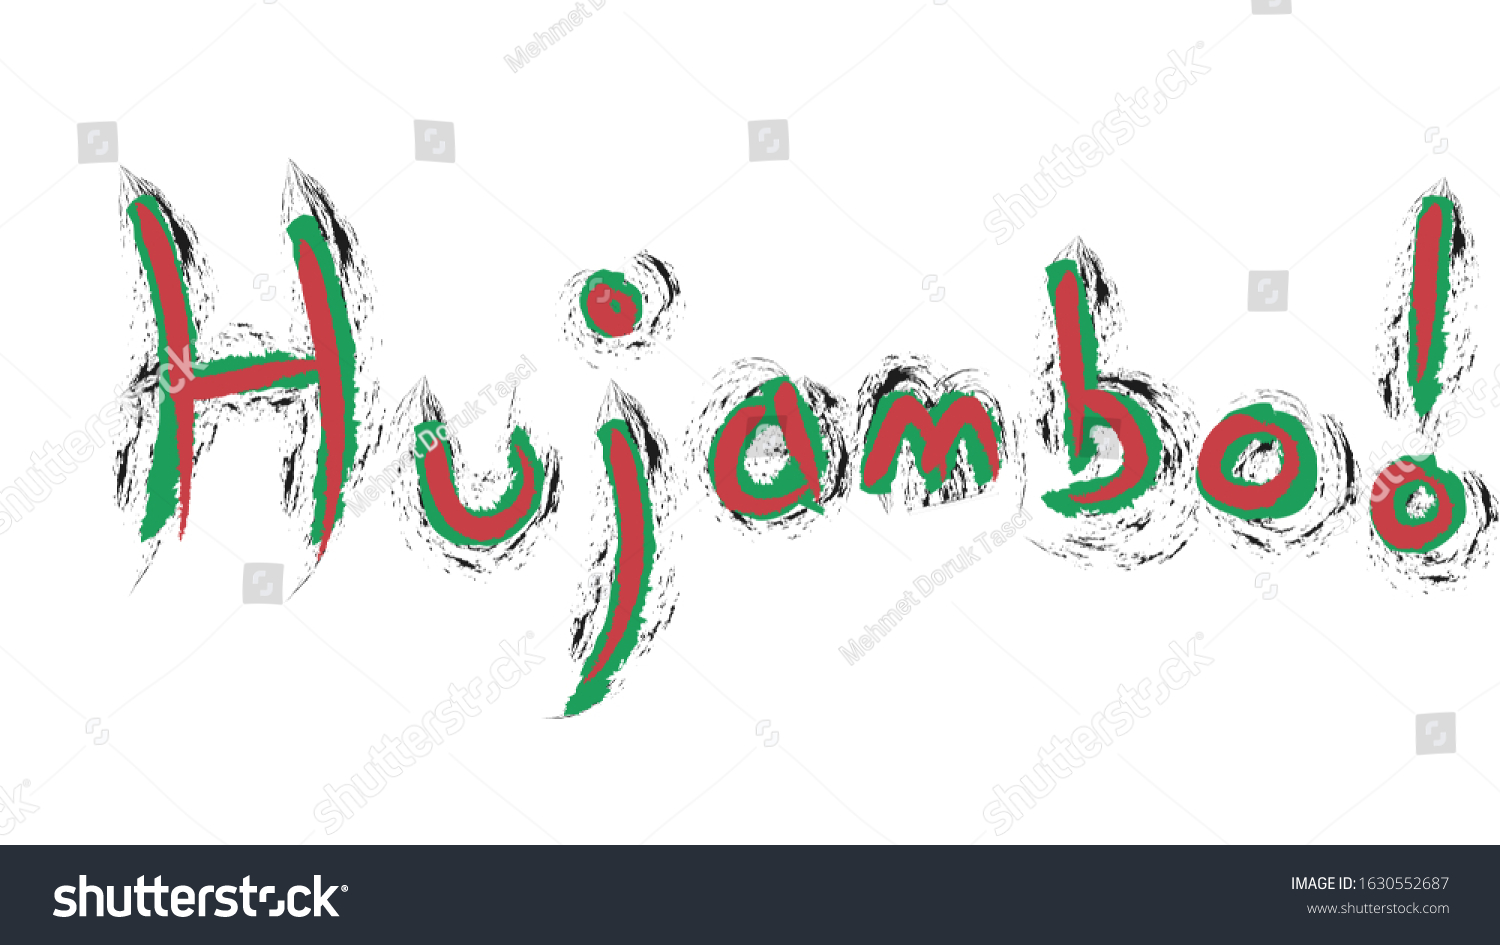 Hujambo Means Hello Swahili Kenya Language Stock Illustration 1630552687